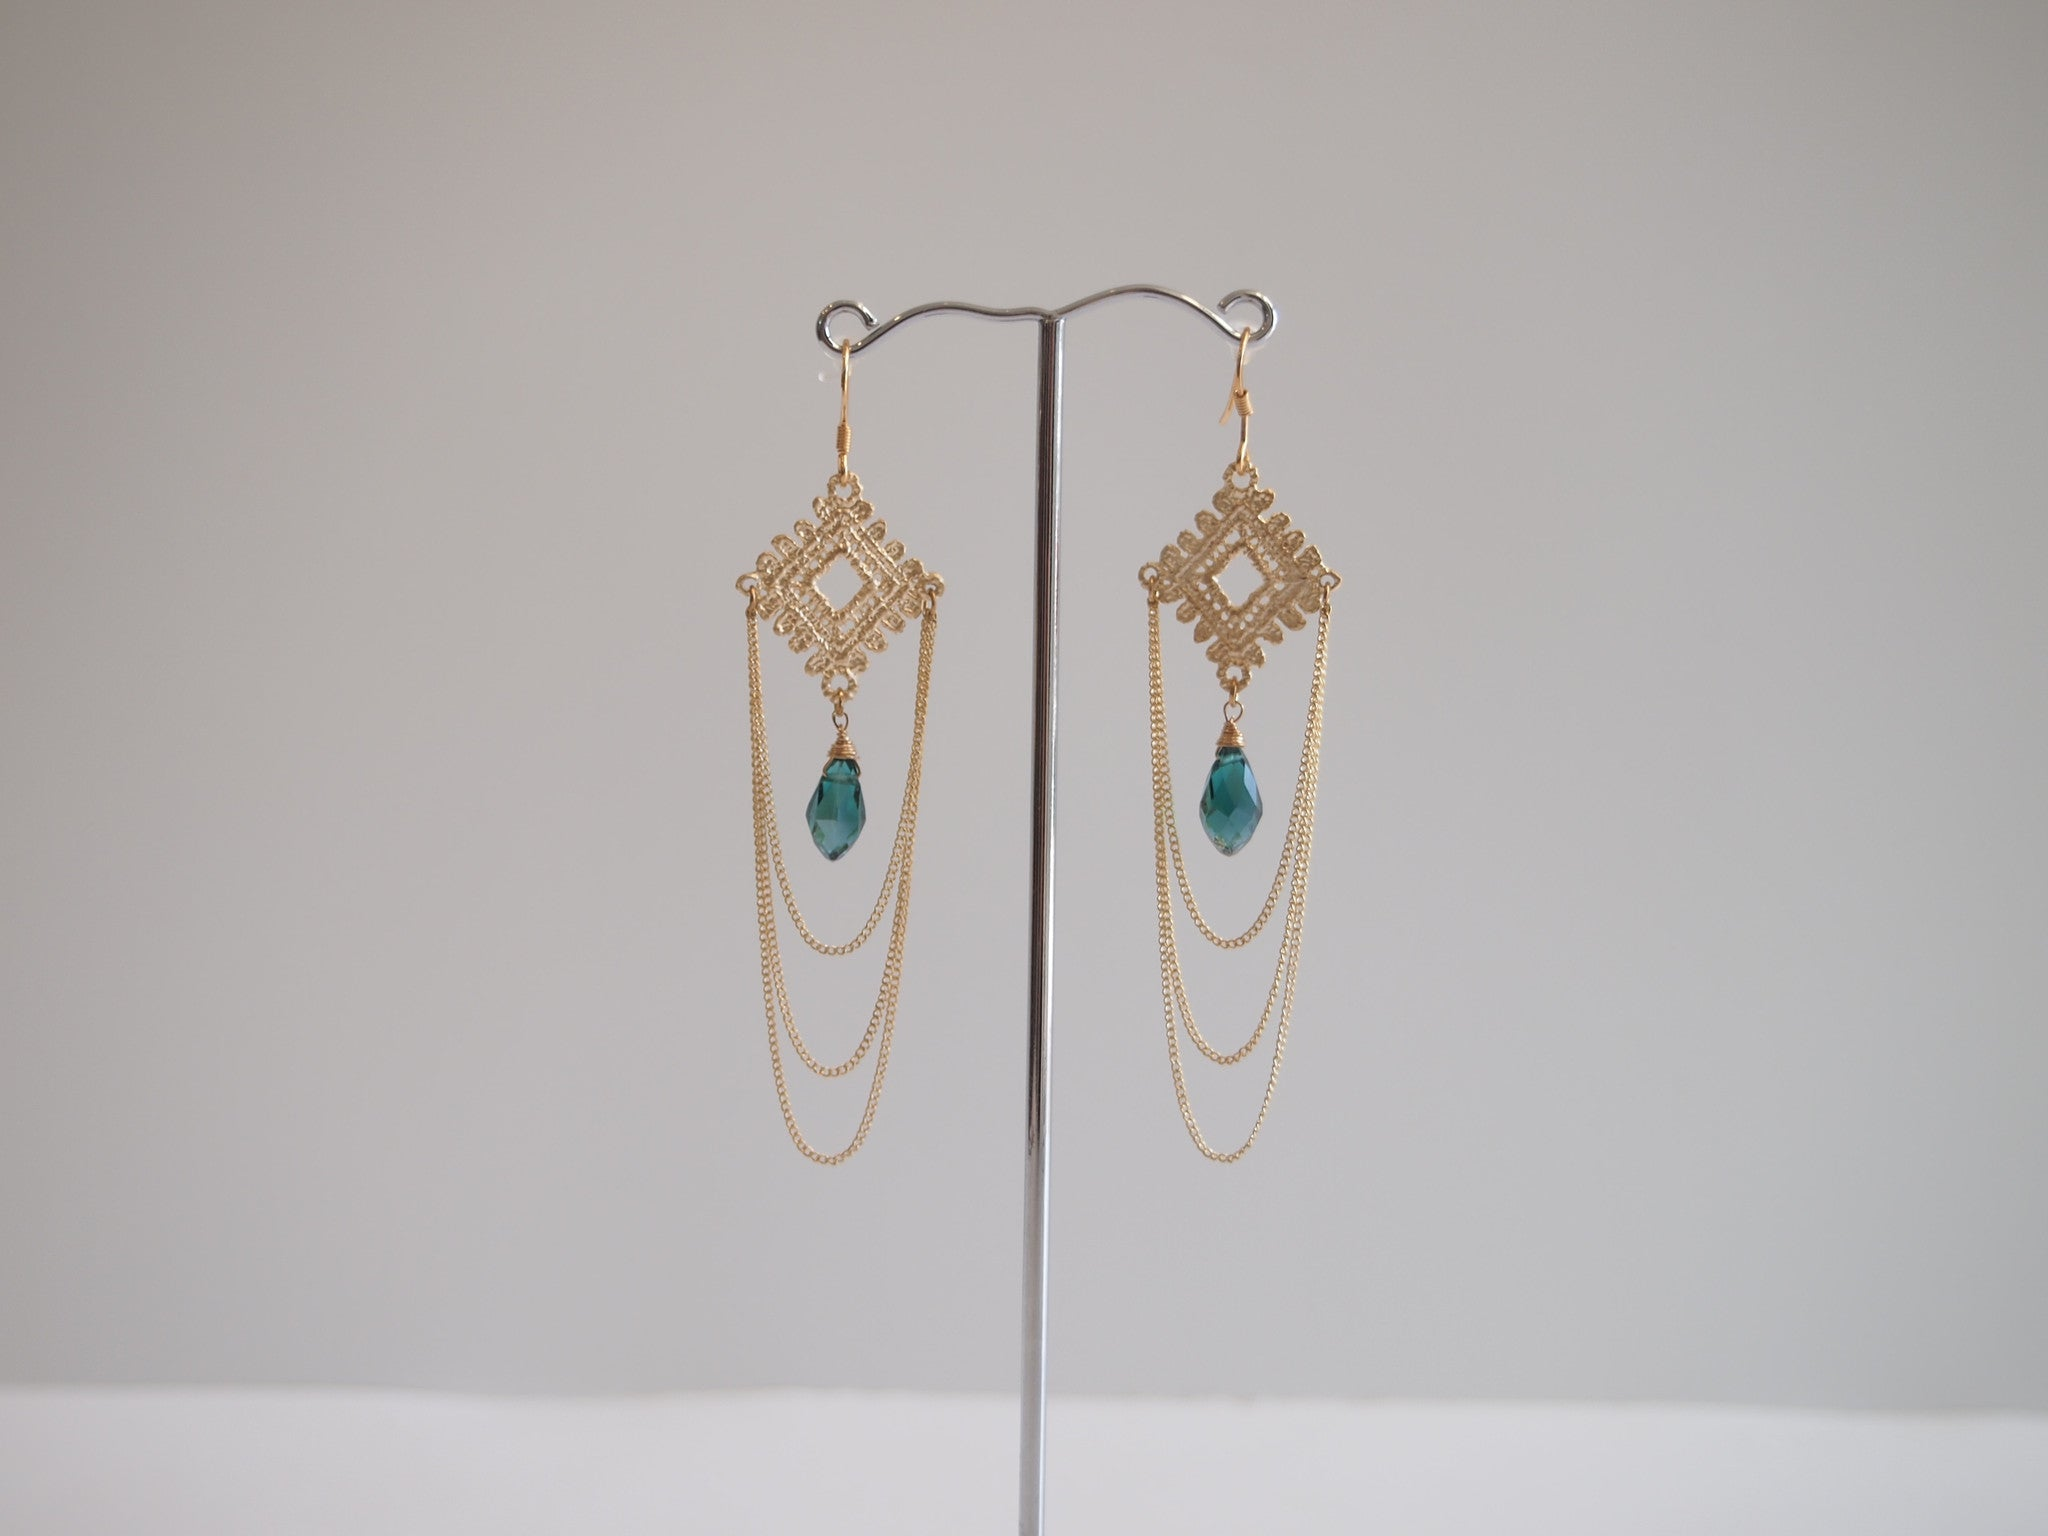 Handmade earrings with green quartz